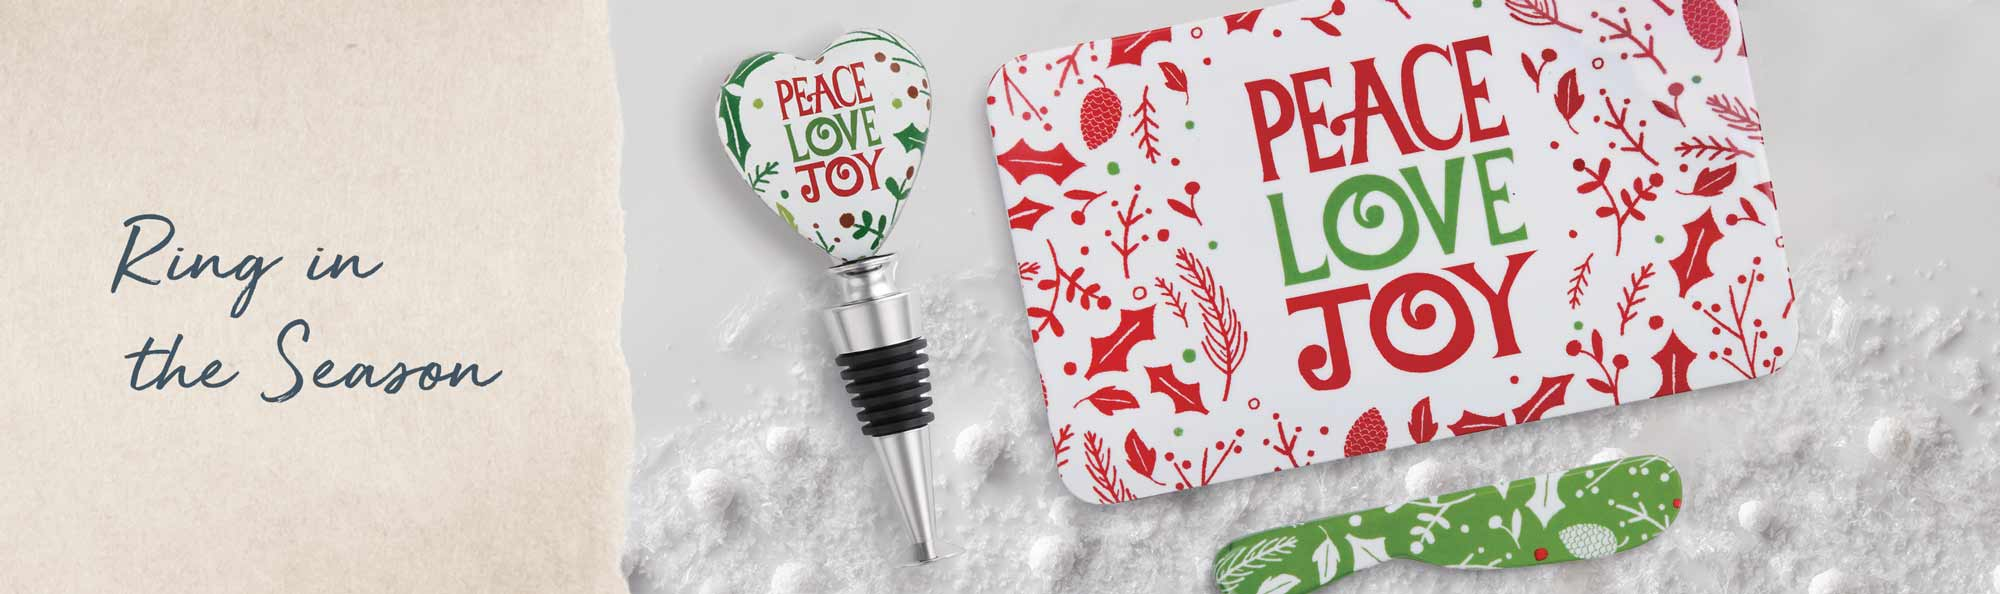 Ring in the Season. Bottle stopper and serving tray decorated in red and green words of Peace Love Joy.